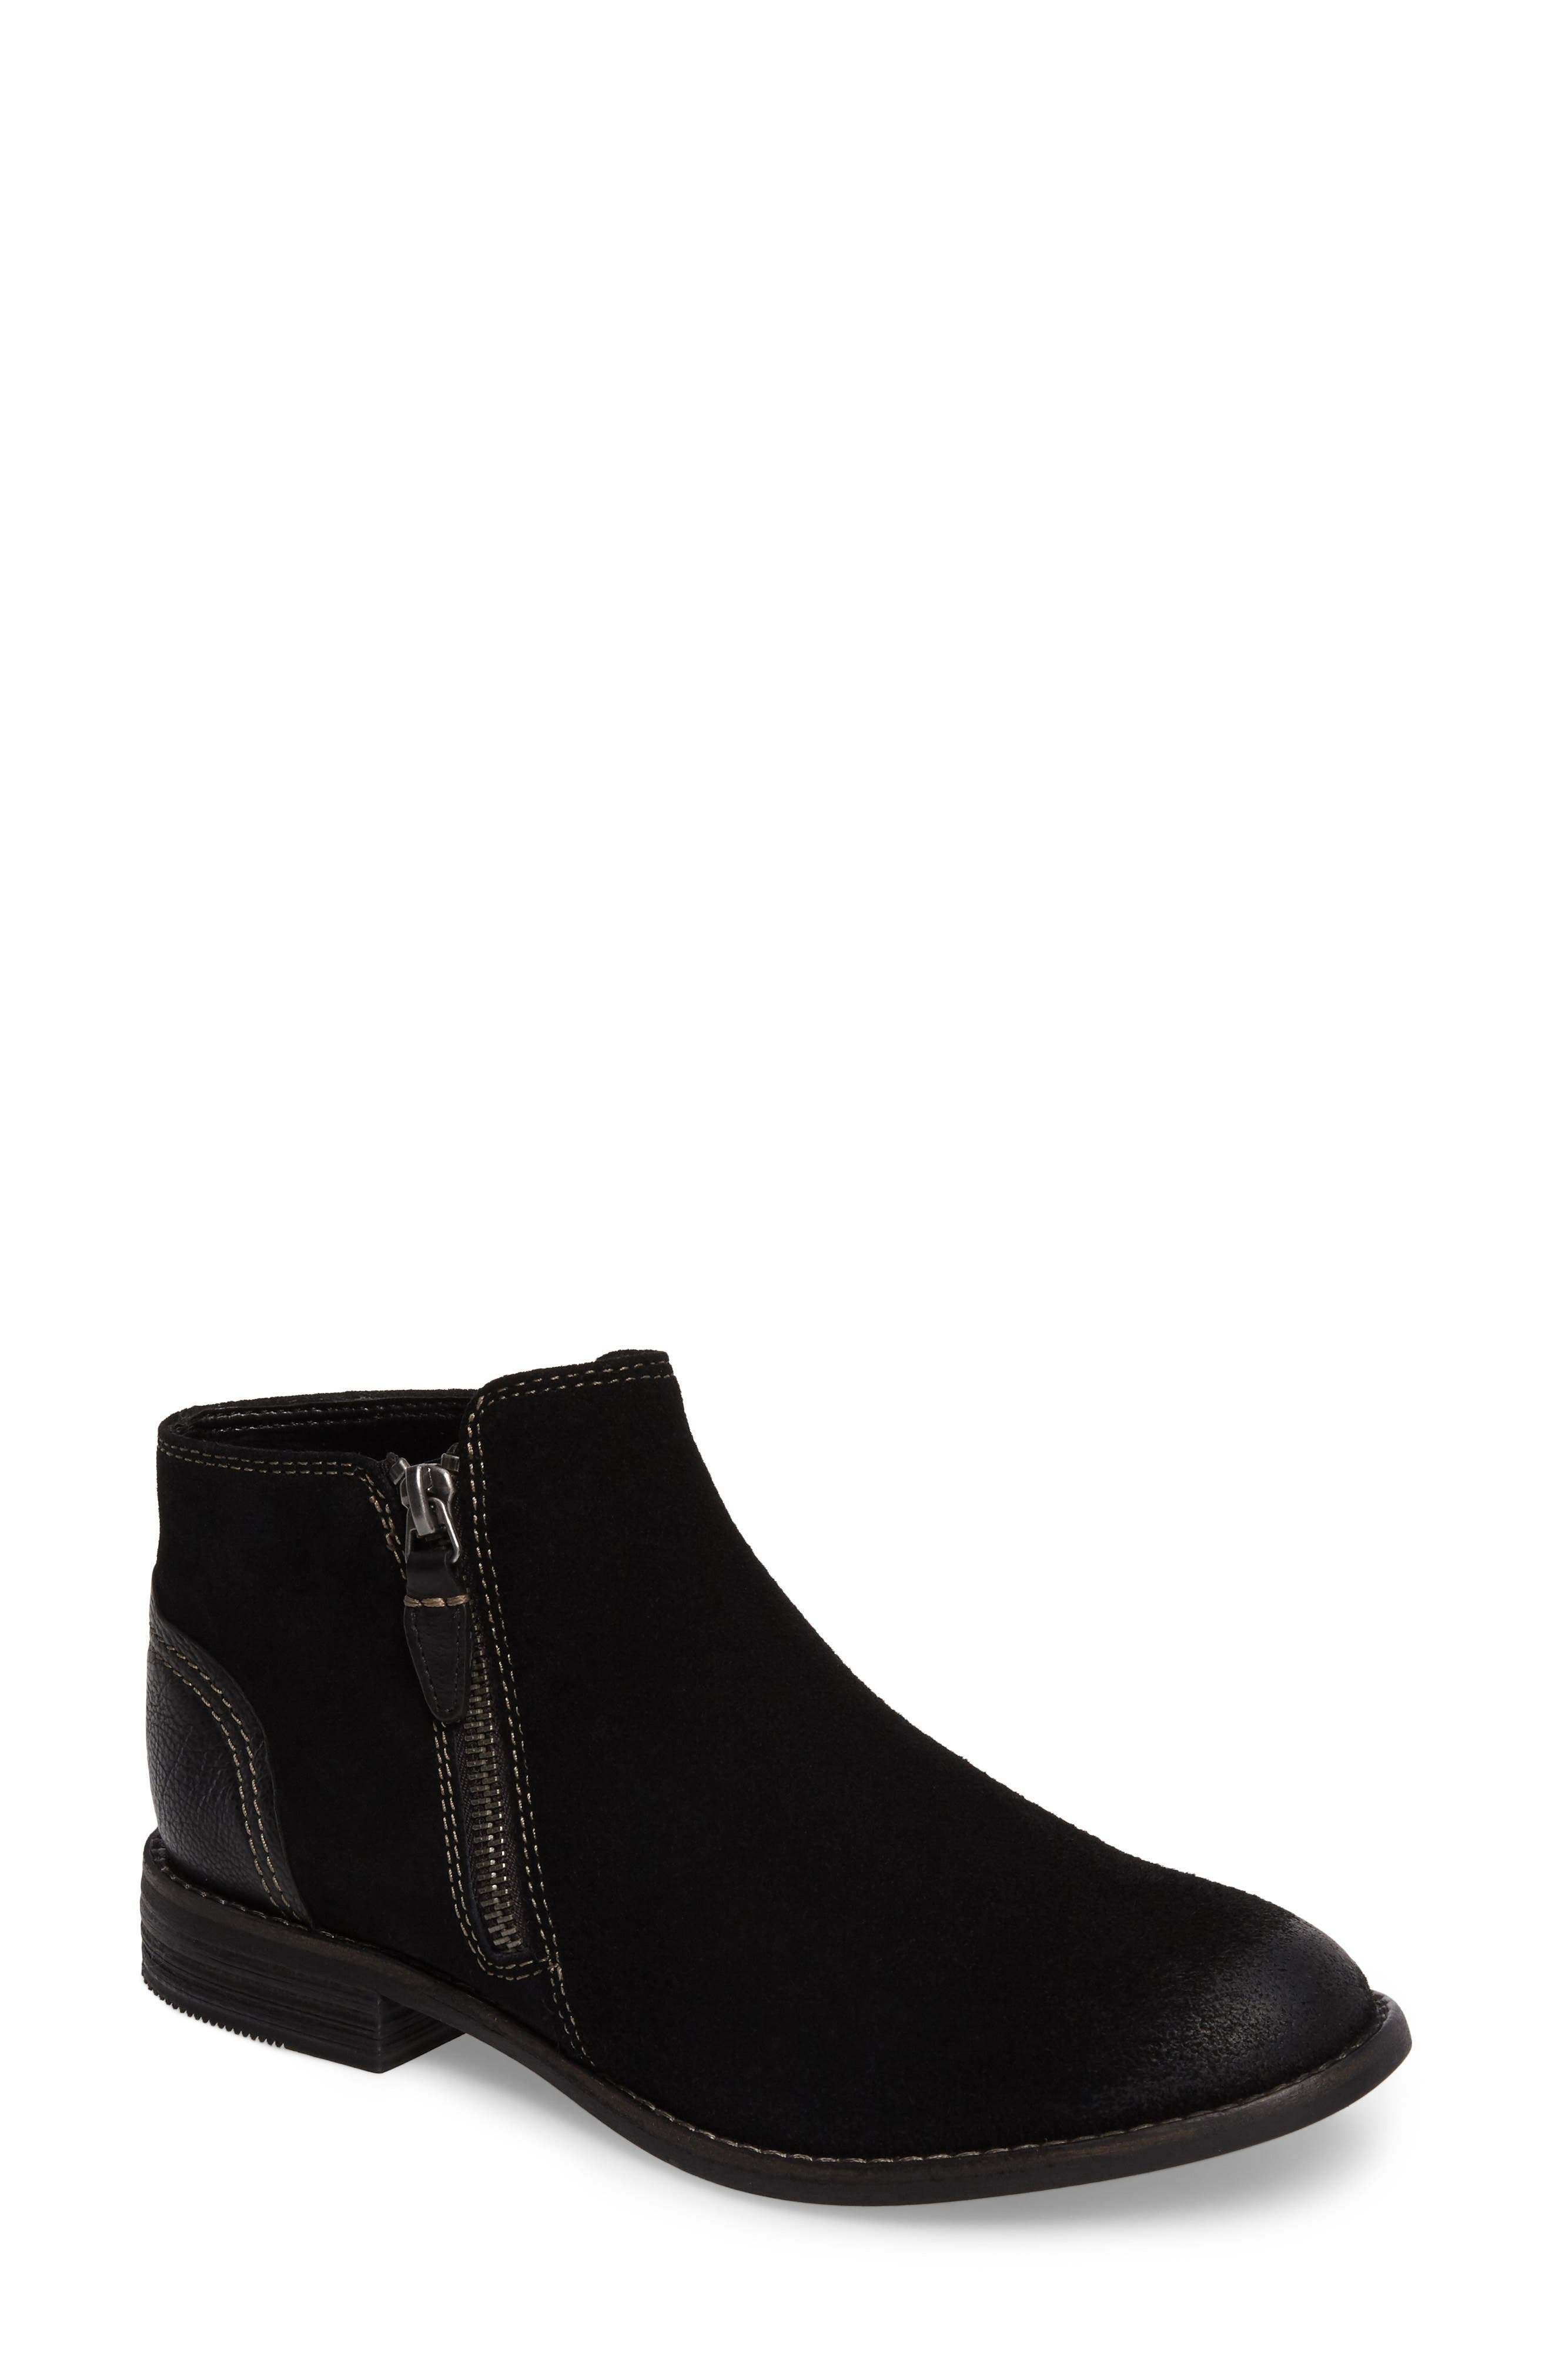 Maypearl Juno Ankle Boot,                         Main,                         color, BLACK SUEDE